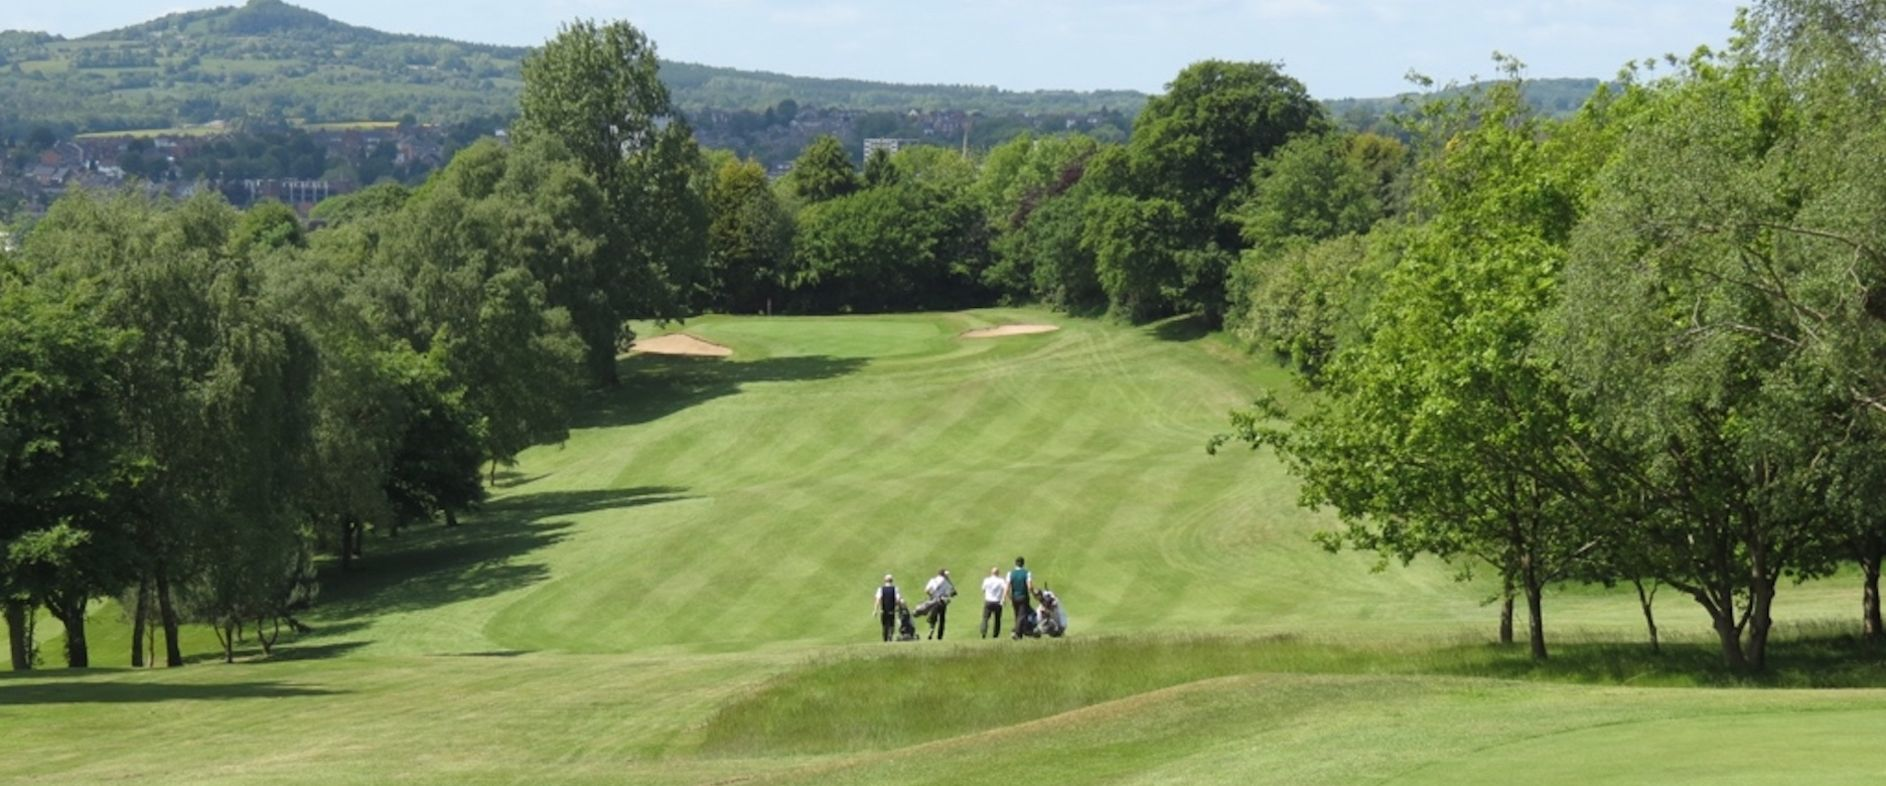 Halesowen GC overlooking the Clent Hills